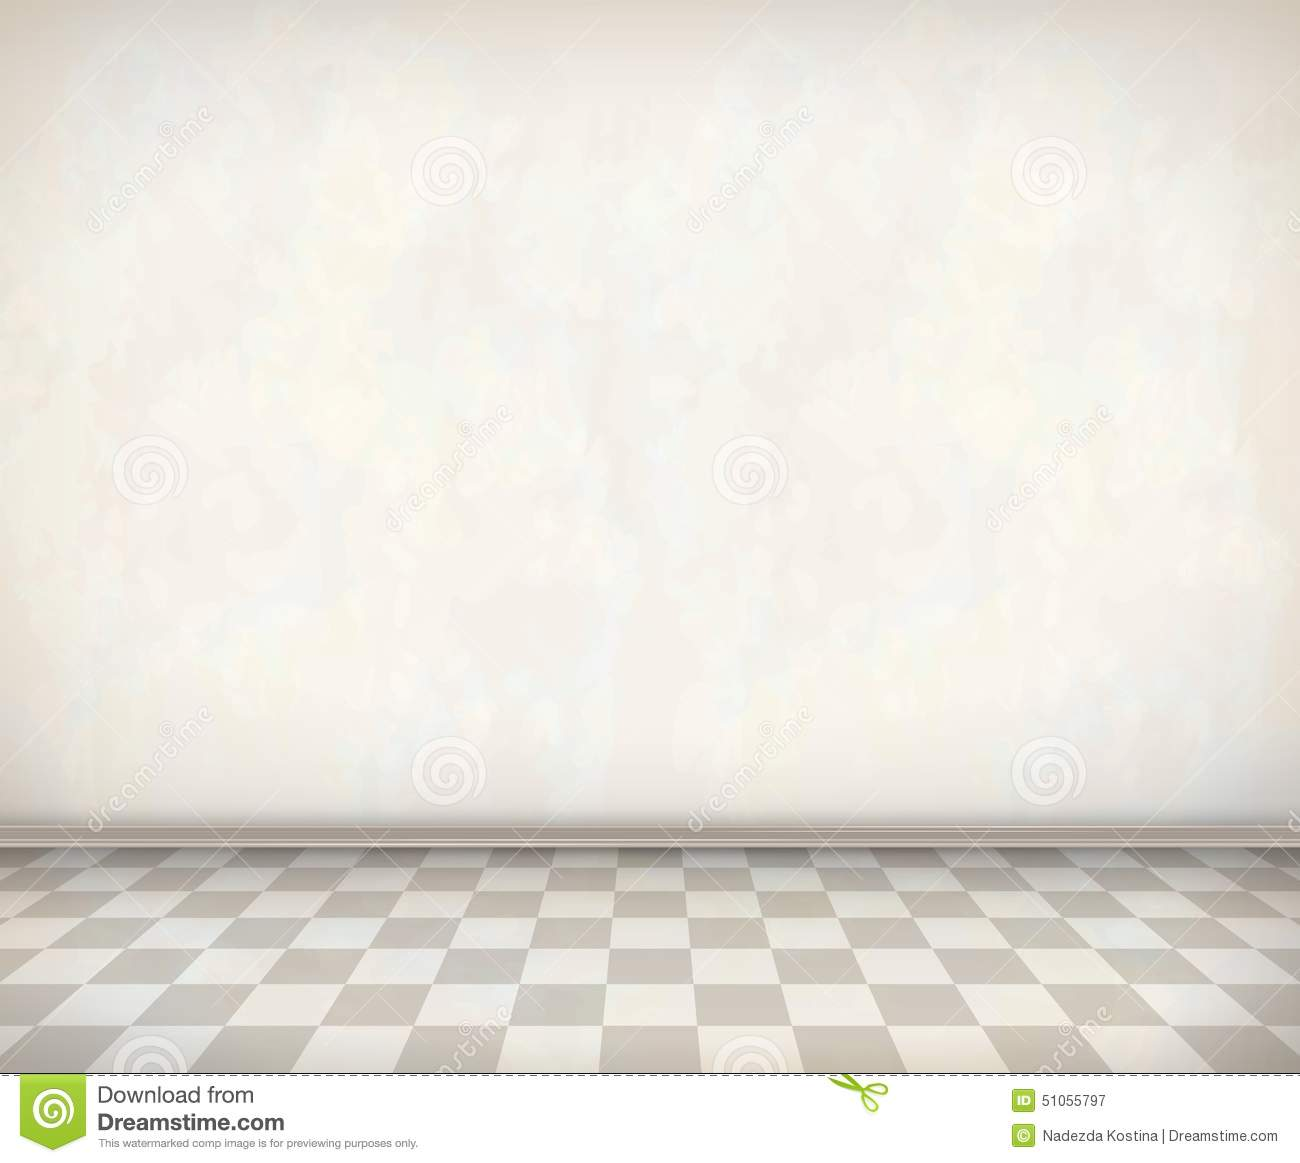 Empty room with white wall tile floor classical vector interior